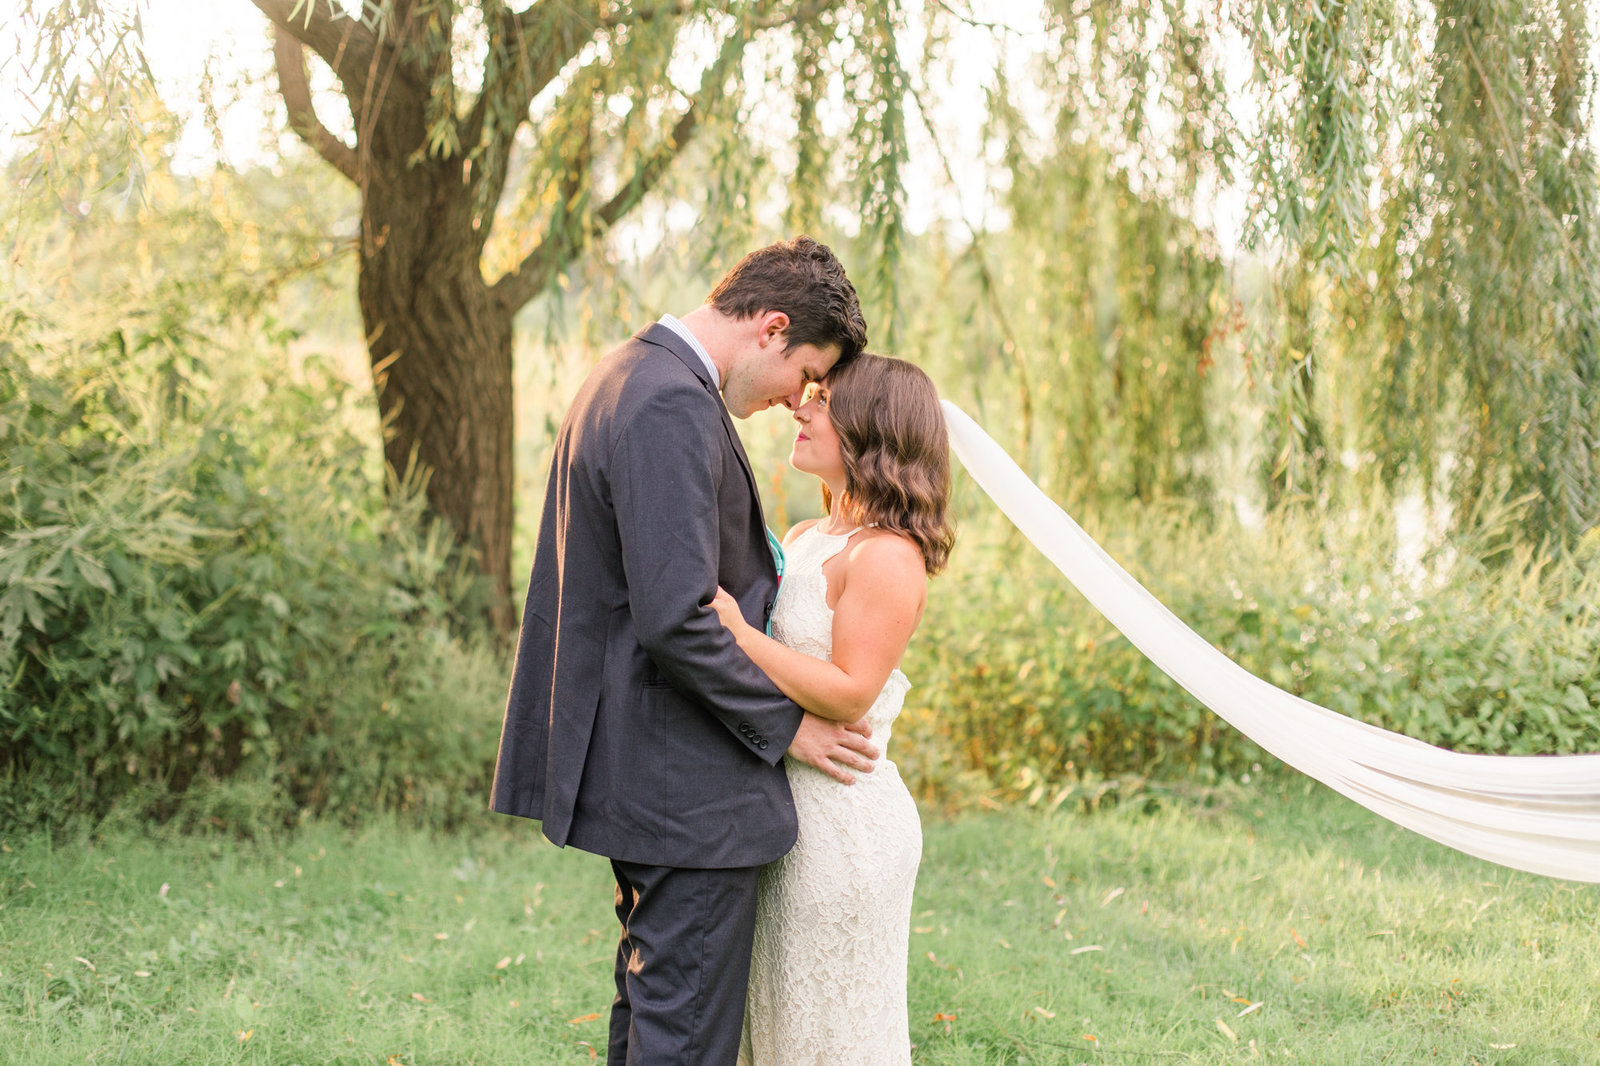 st-louis-wedding-photographer-alton-belleville-spring-stl-romantic-portraits-weddings-61